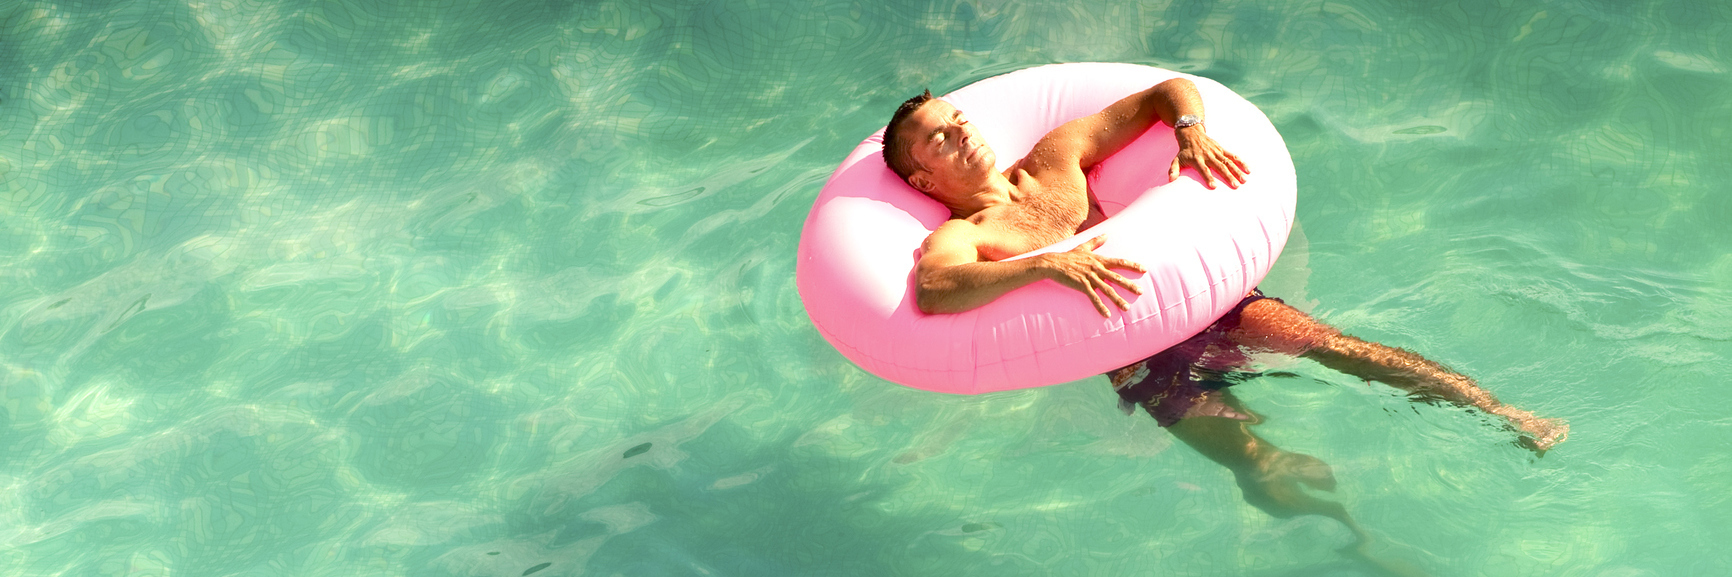 man lying in pink rubber ring in pool on summer day